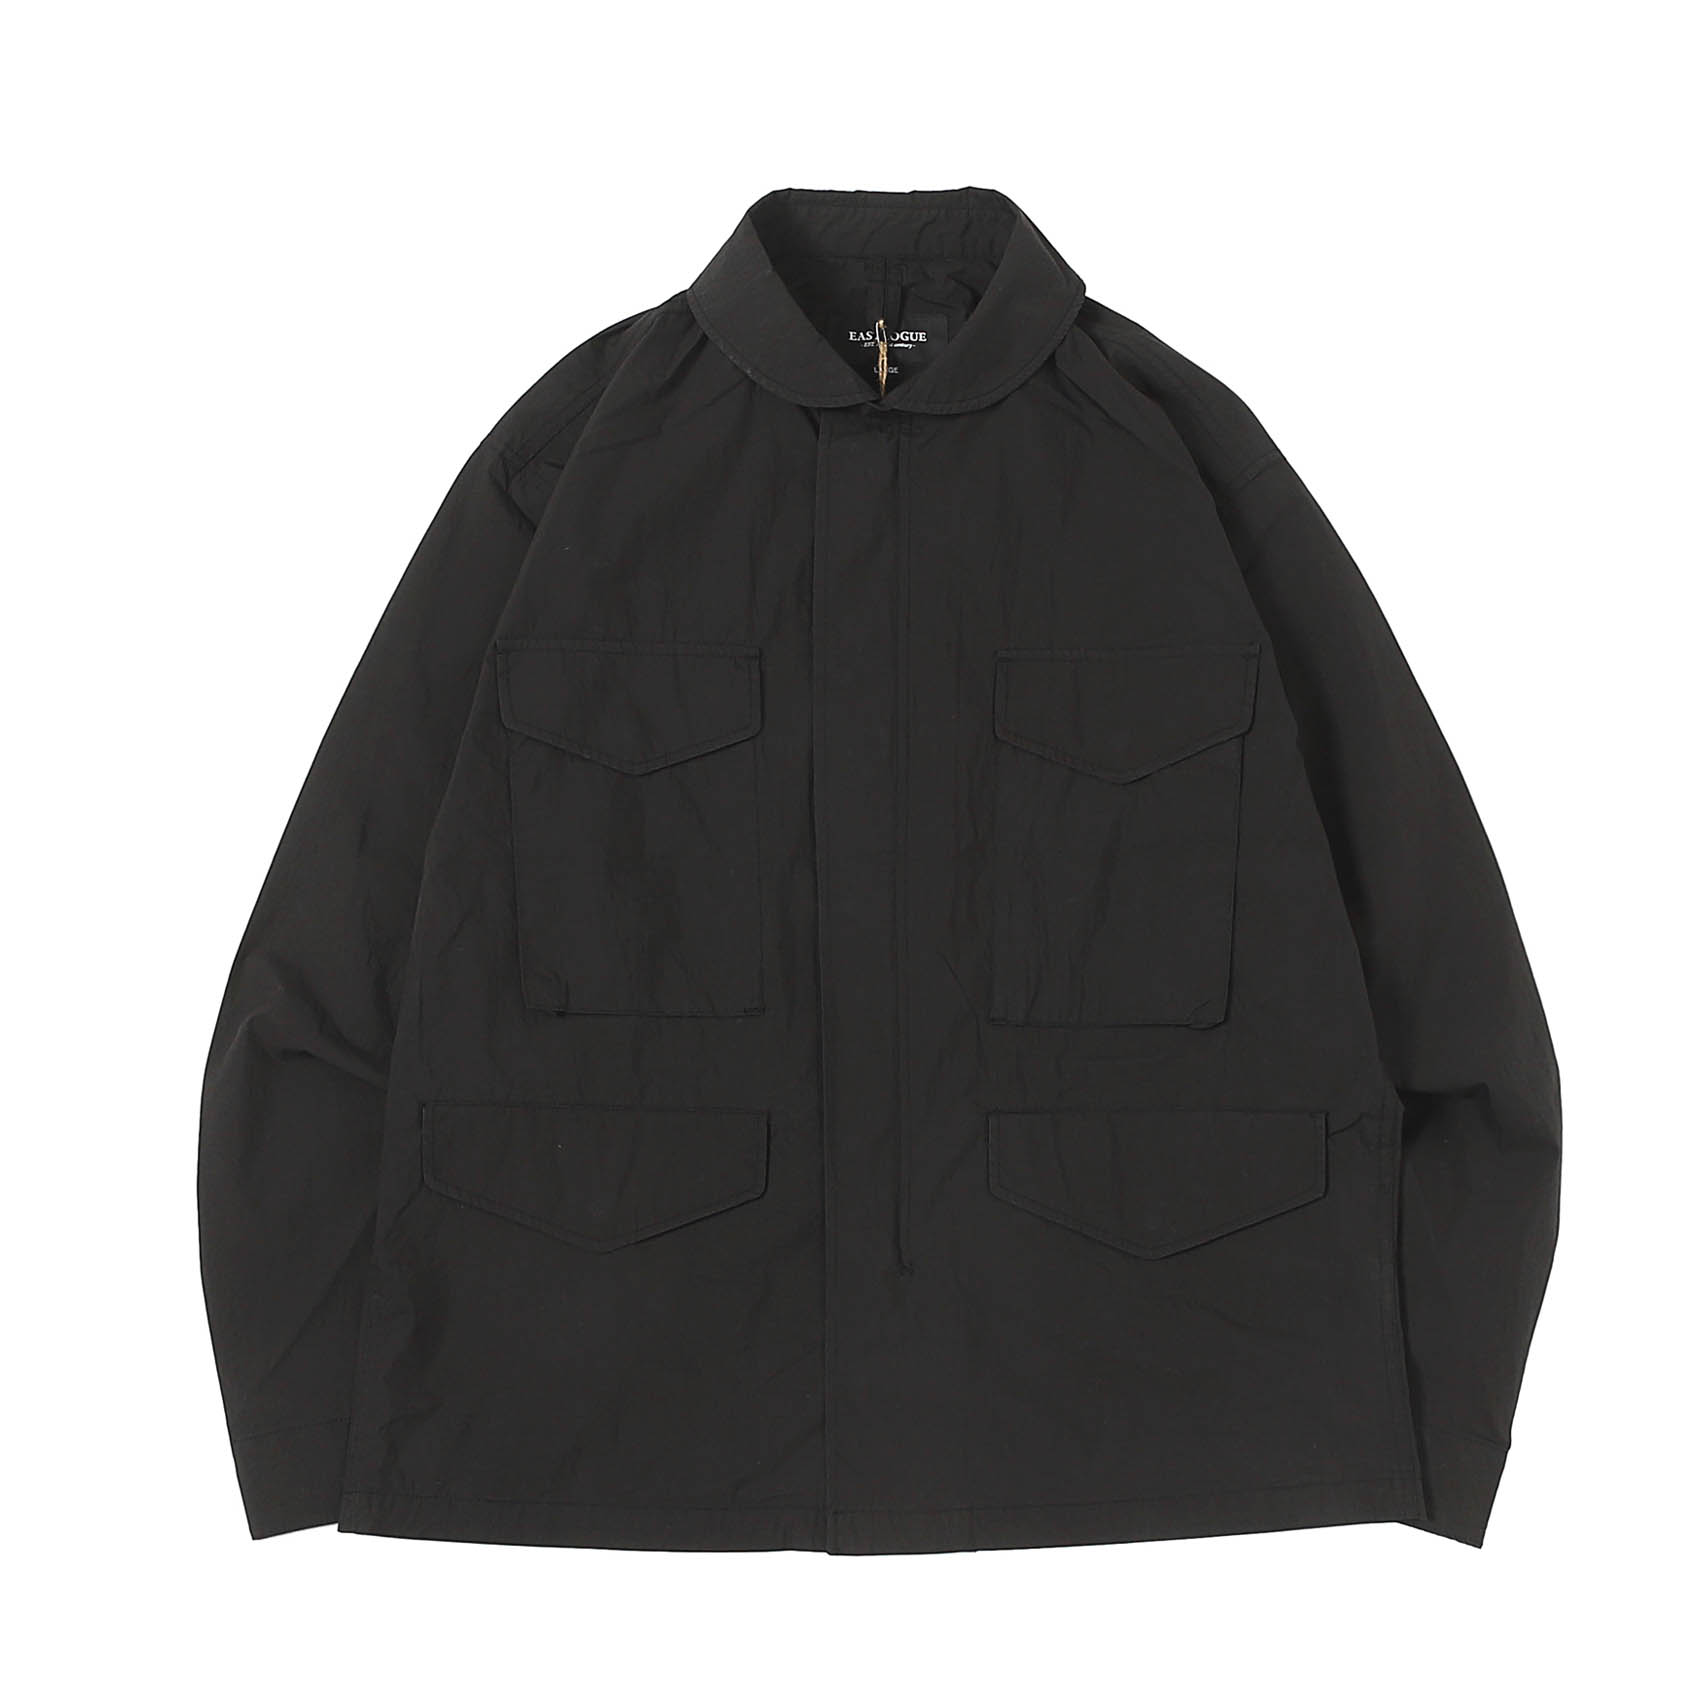 M21 JACKET - BLACK WASHER